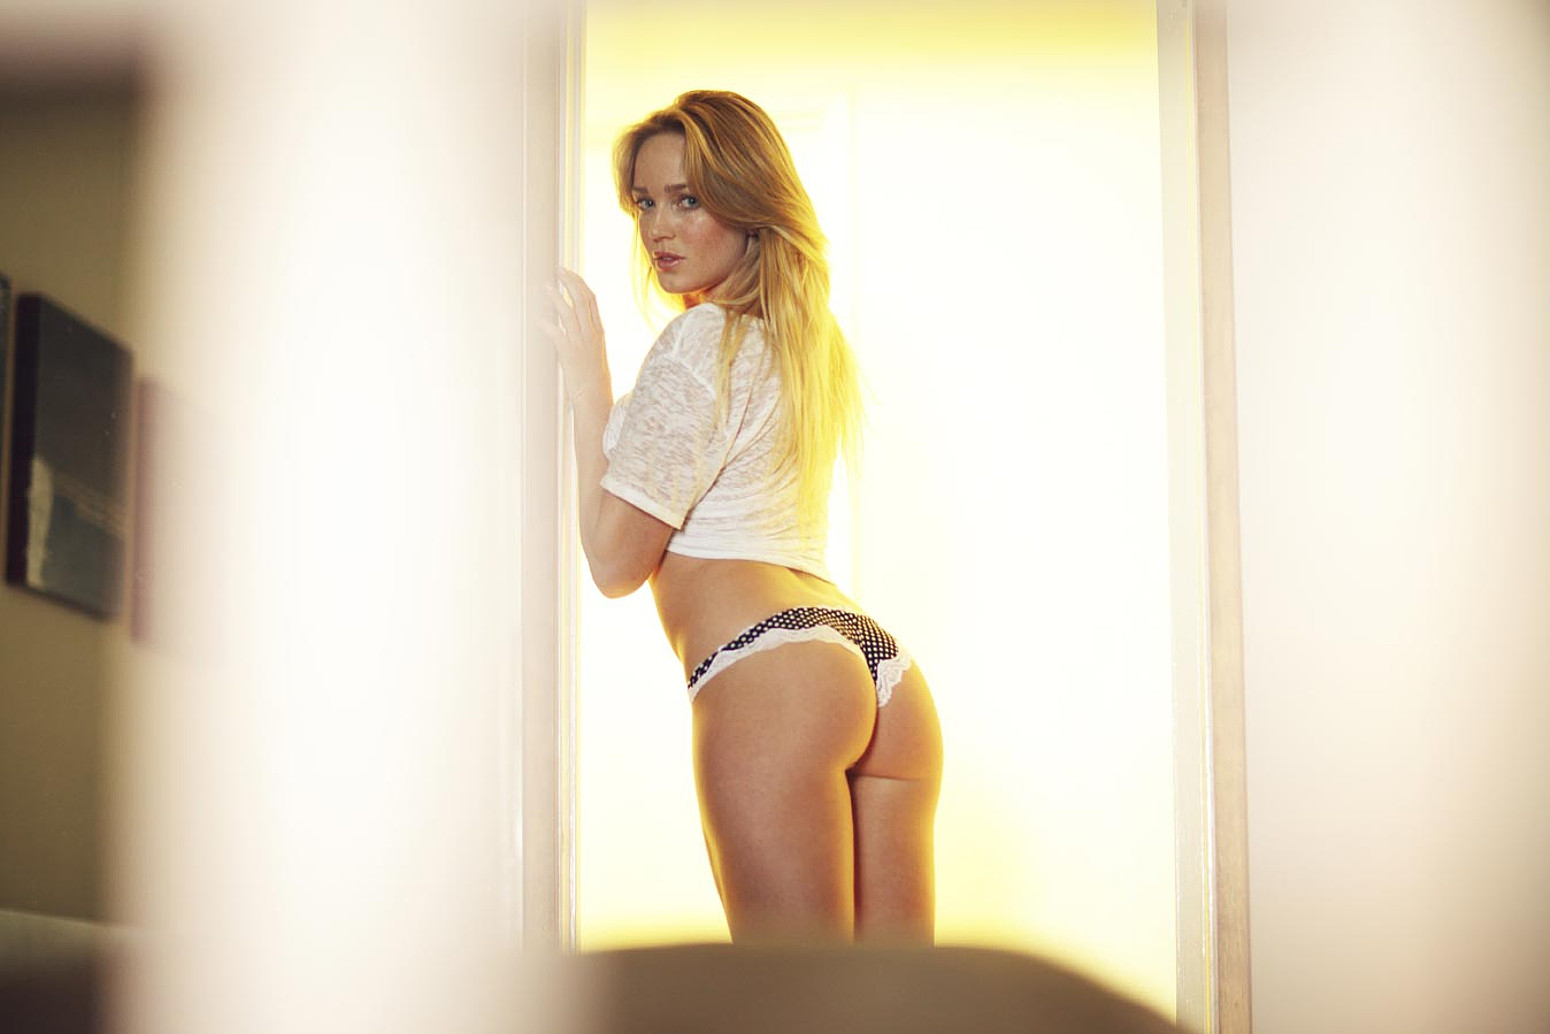 caity lotz hot